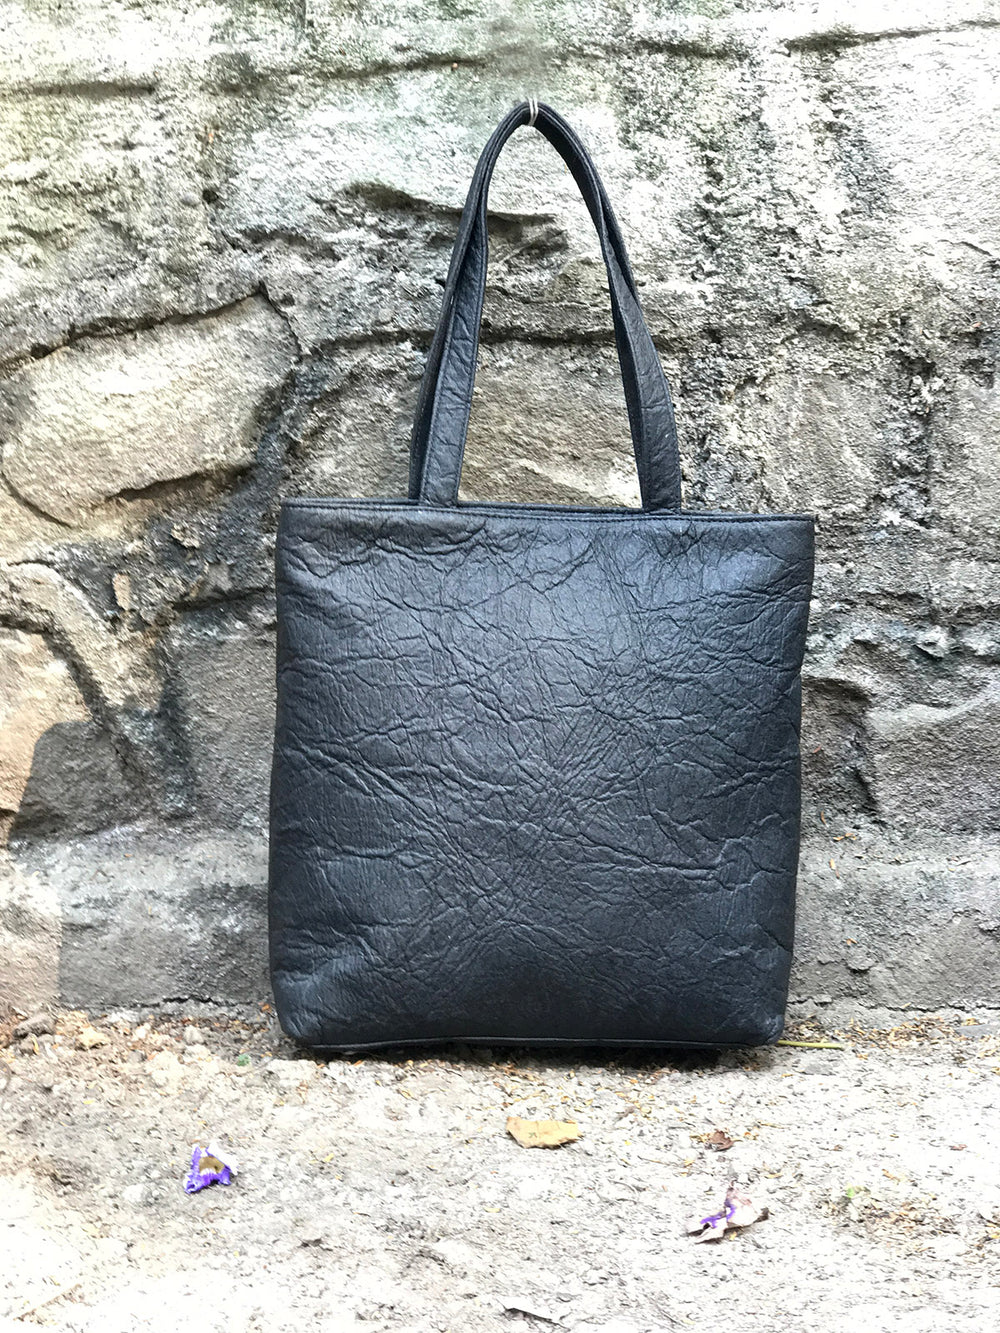 Pinatex Tote - limited edition